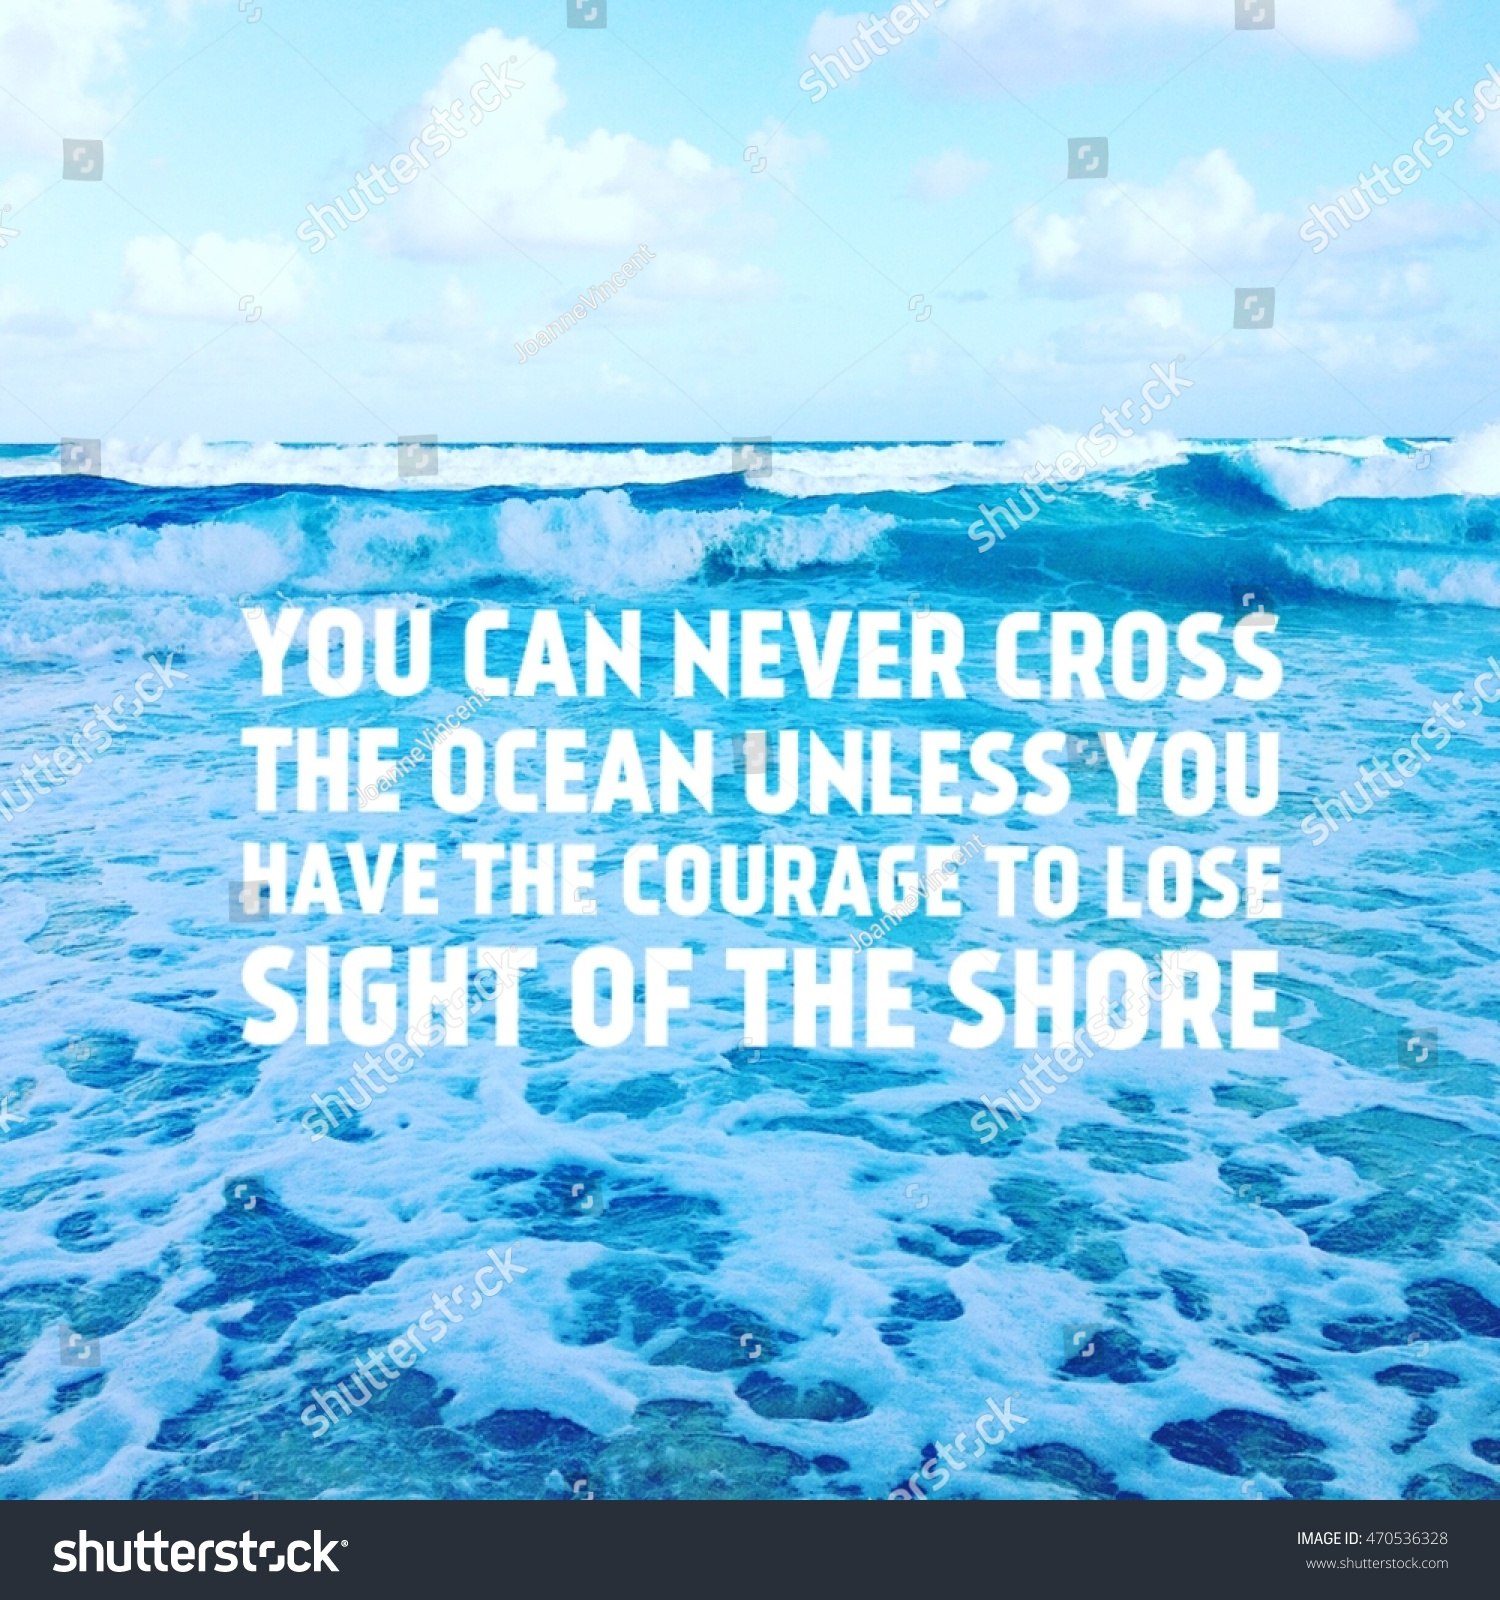 Scenic quotes daily inspirational quotations and sayings on - Inspirational Quote On Scenic Summer Blue Ocean Waves With Blue Sky Clouds And Horizon Background